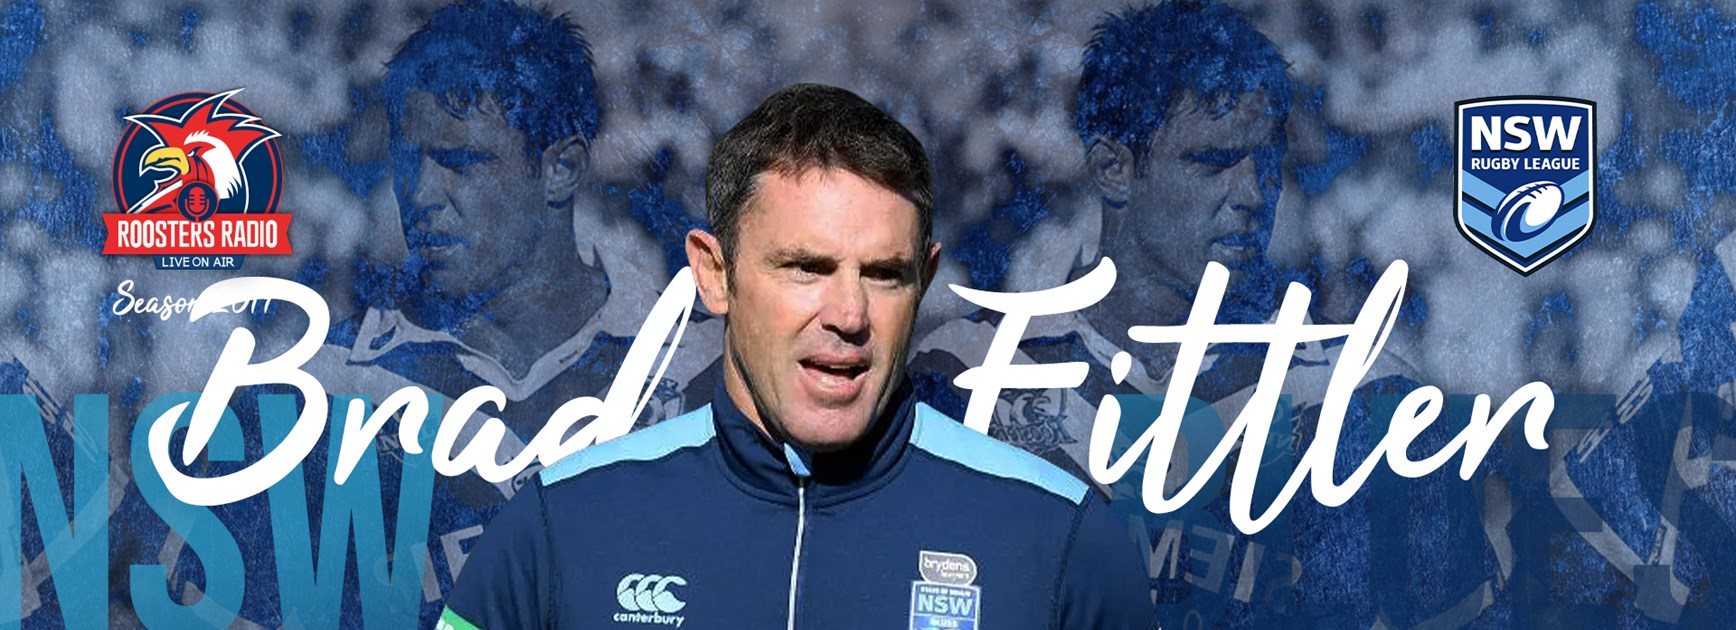 Roosters Radio | Brad Fittler